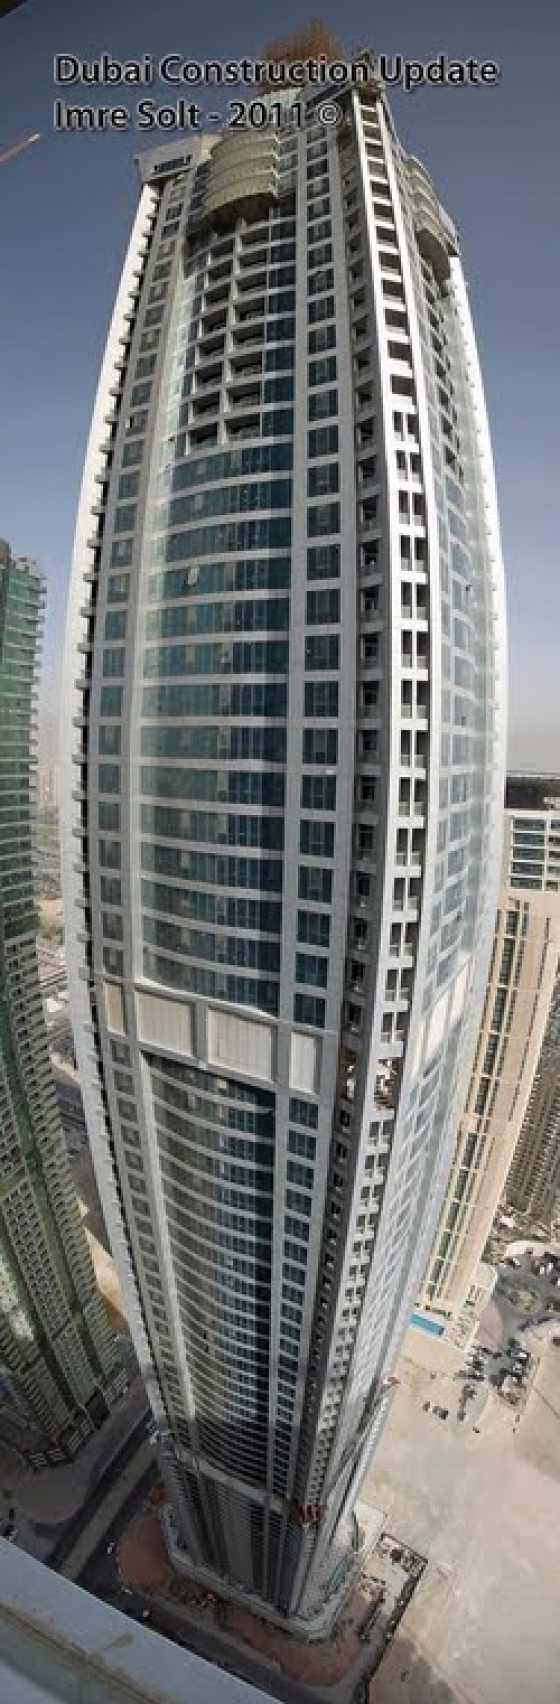 برج تورچ-مشعل دبی - Dubai Torch Tower - بیسان گشت